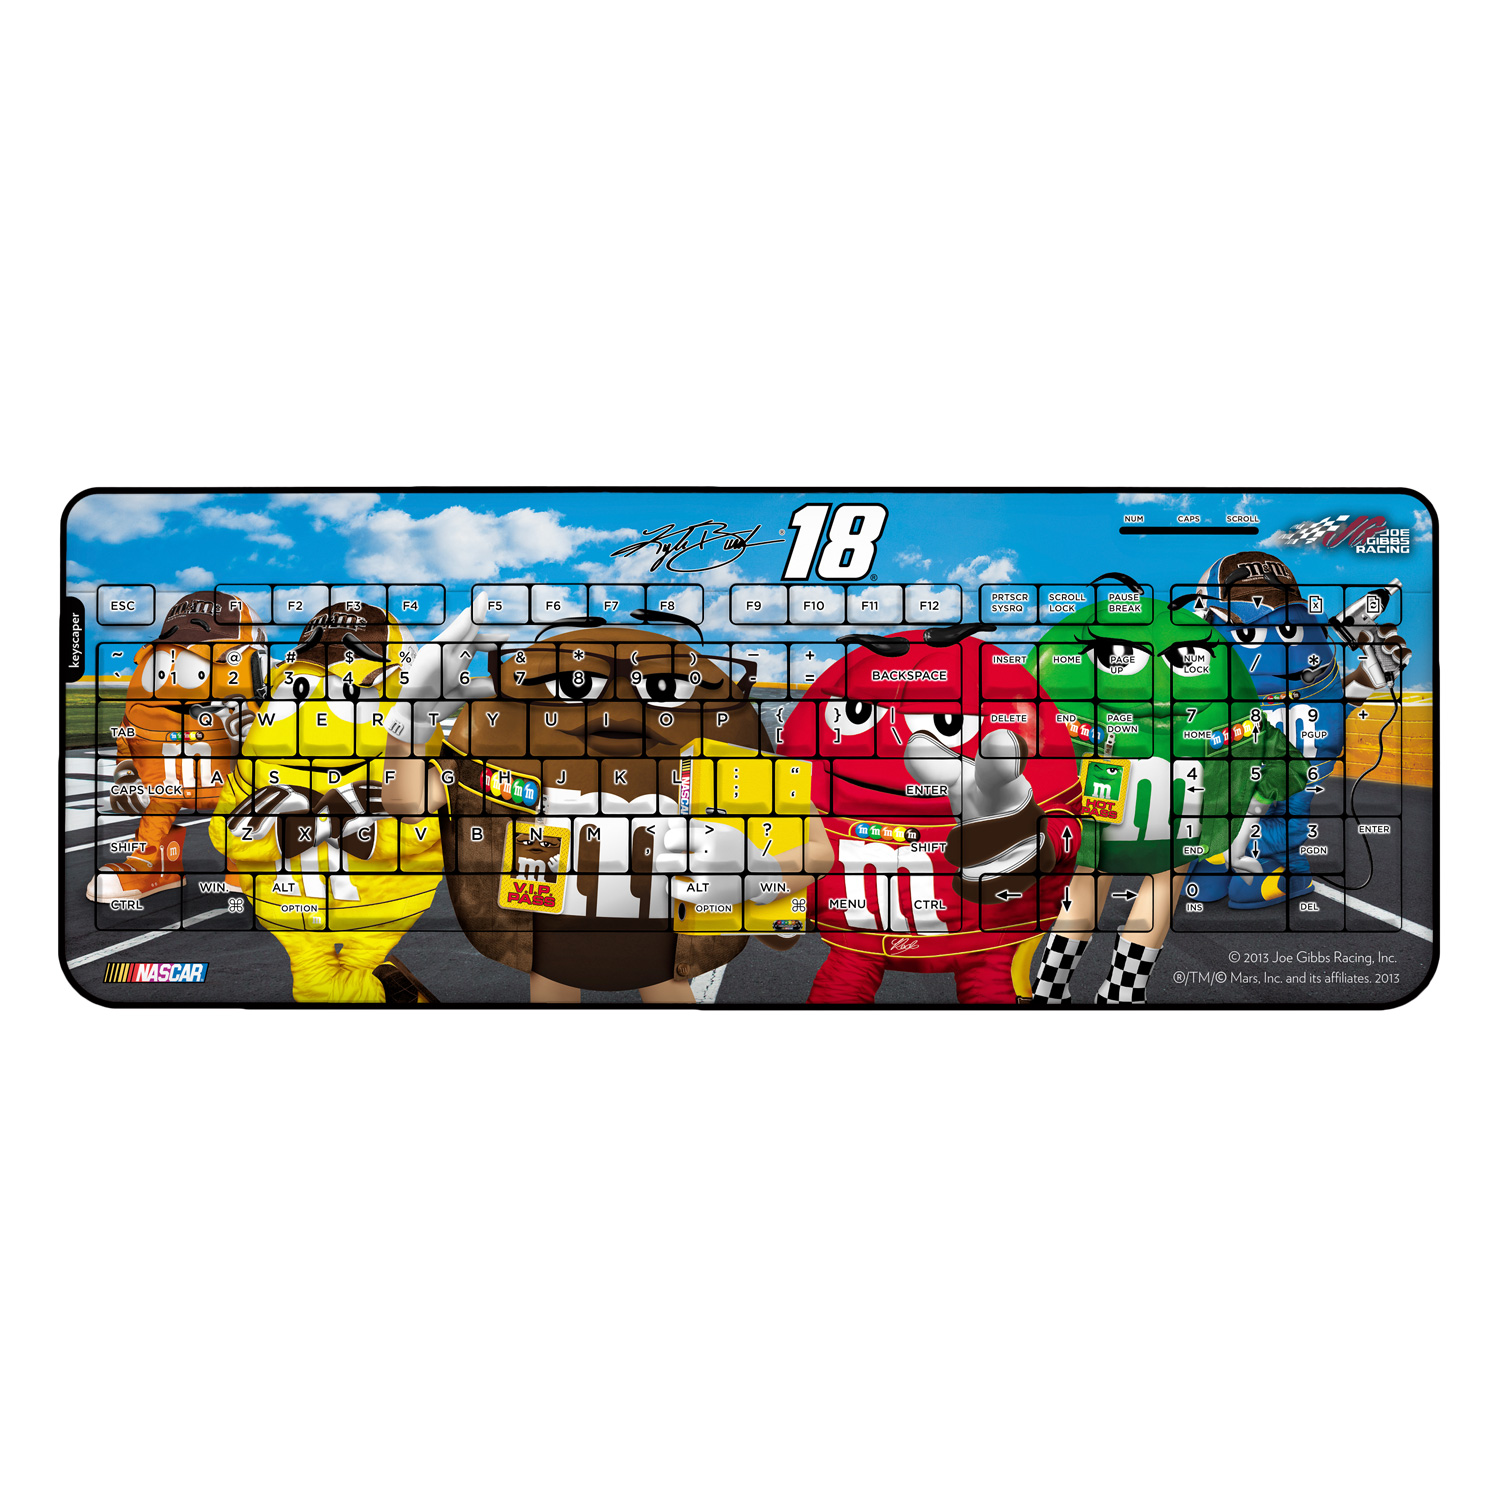 Kyle Busch Wireless USB Keyboard NASCAR